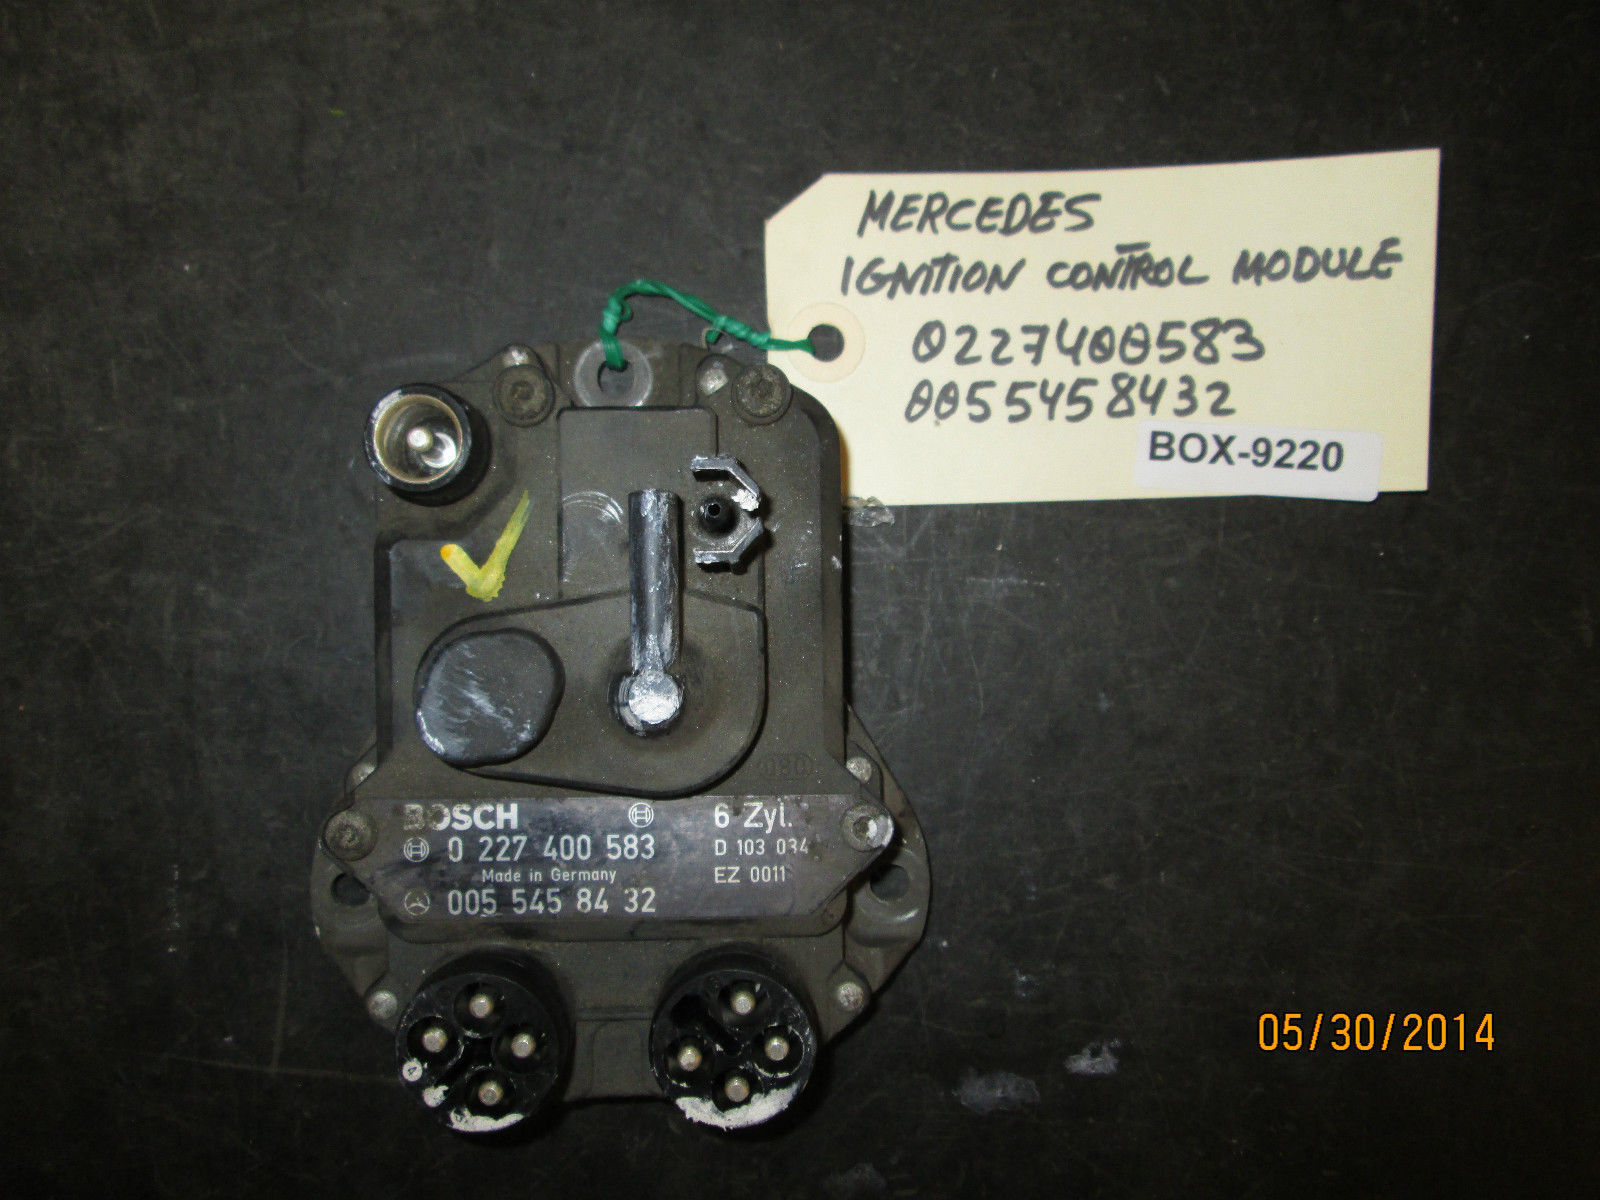 Mercedes Ignition Control Module: 7 listings